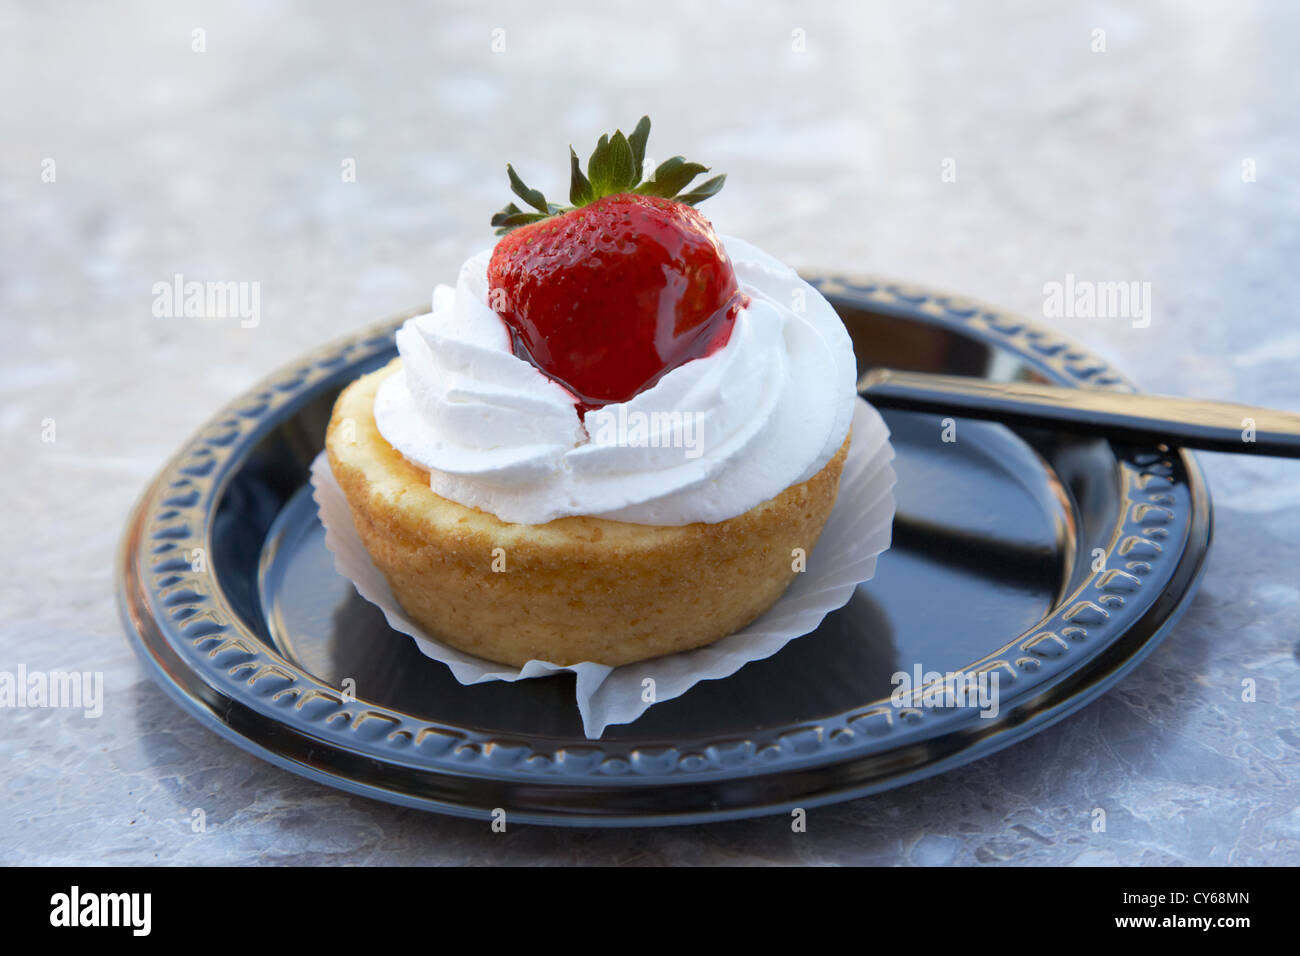 strawberry cheesecake pastry single serving on disposable plastic plate usa - Stock Image